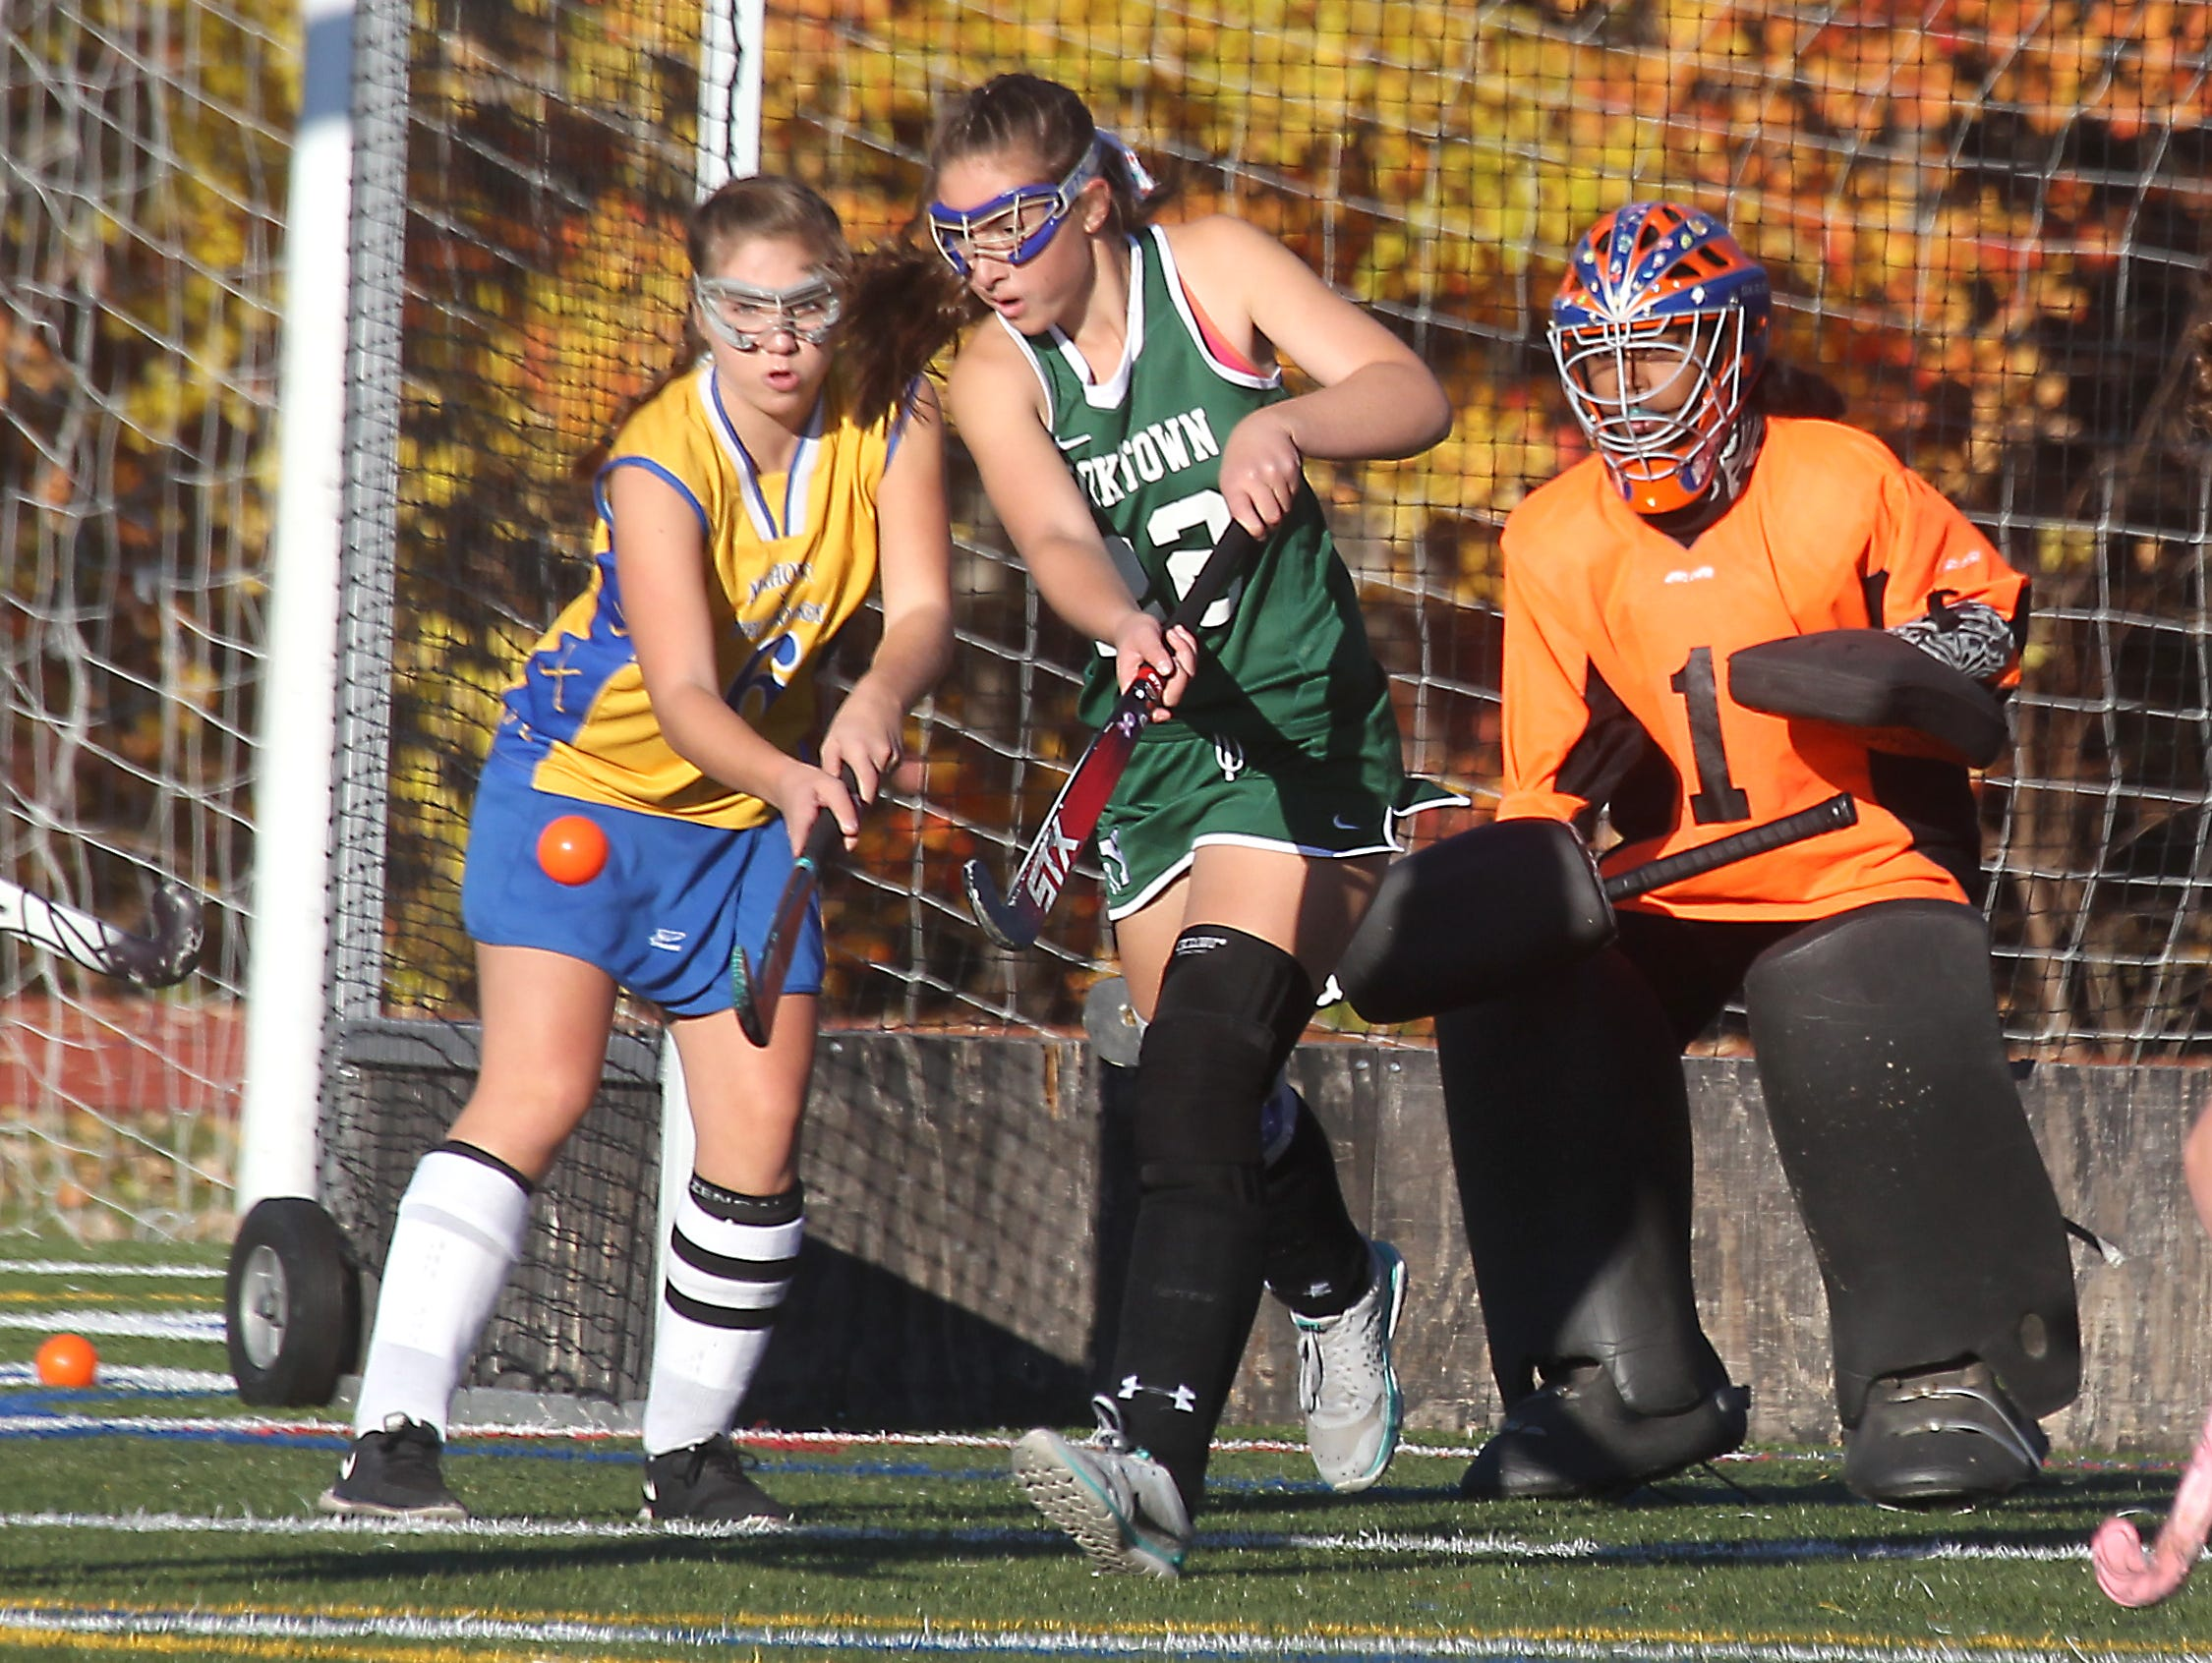 Yorktown's Julia Wurzel (22) clears the ball away from Mahopac's Gianna DeCola during their Class A opening round playoff game at Mahopac Oct. 26, 2015. At right is Yorktown goalie Olivia Sanchez. Mahopac won 3-2.